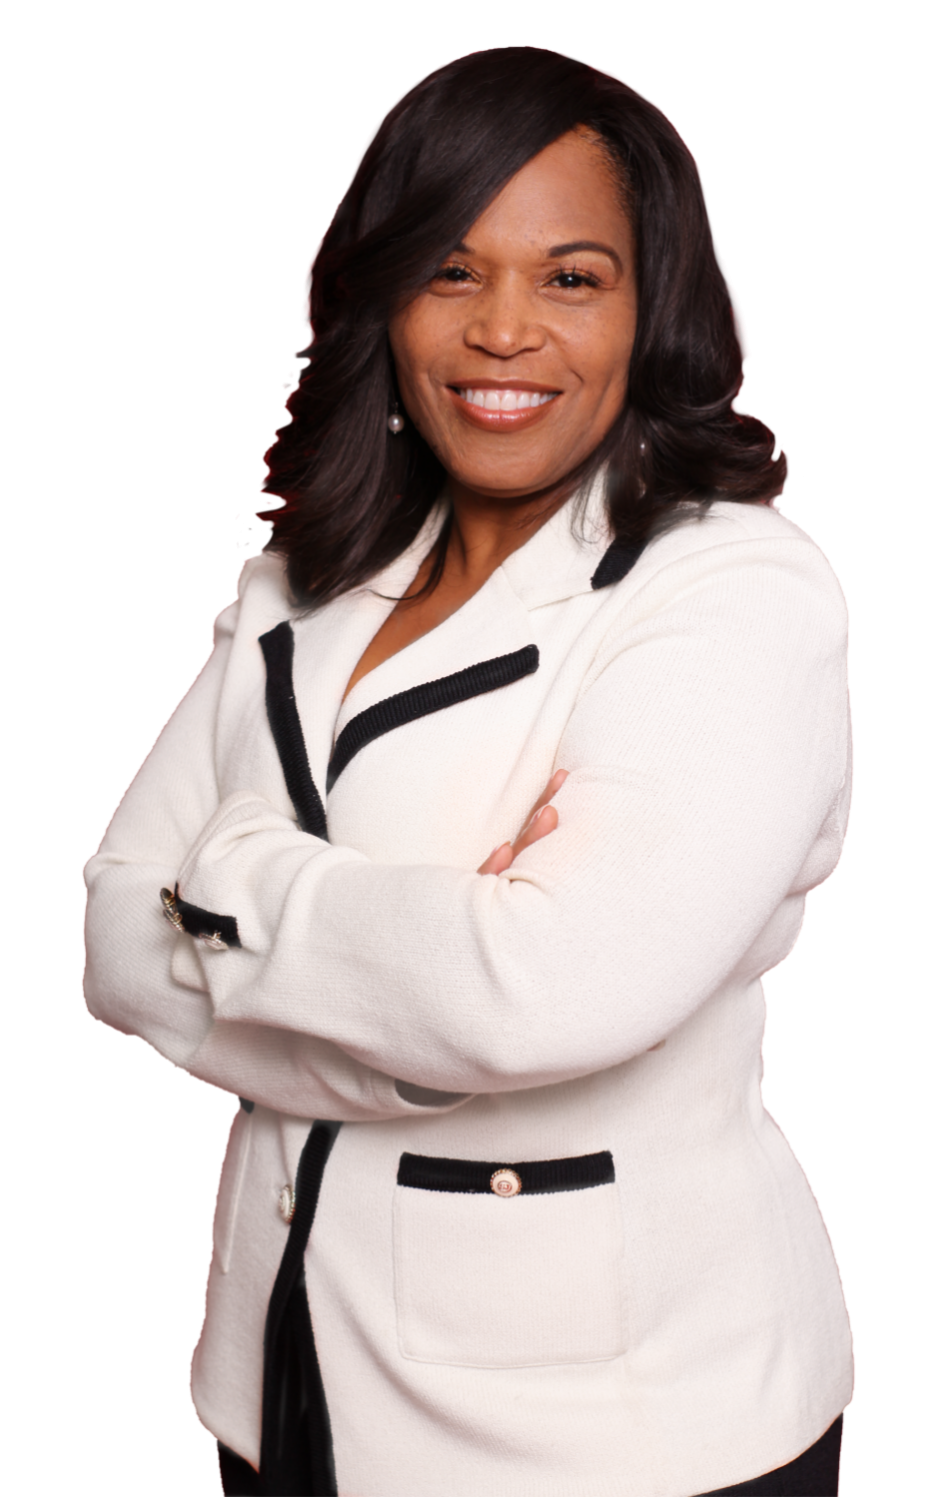 Morgan Sate University's new provost and vice president for Academic Affairs, Lesia Crumpton-Young